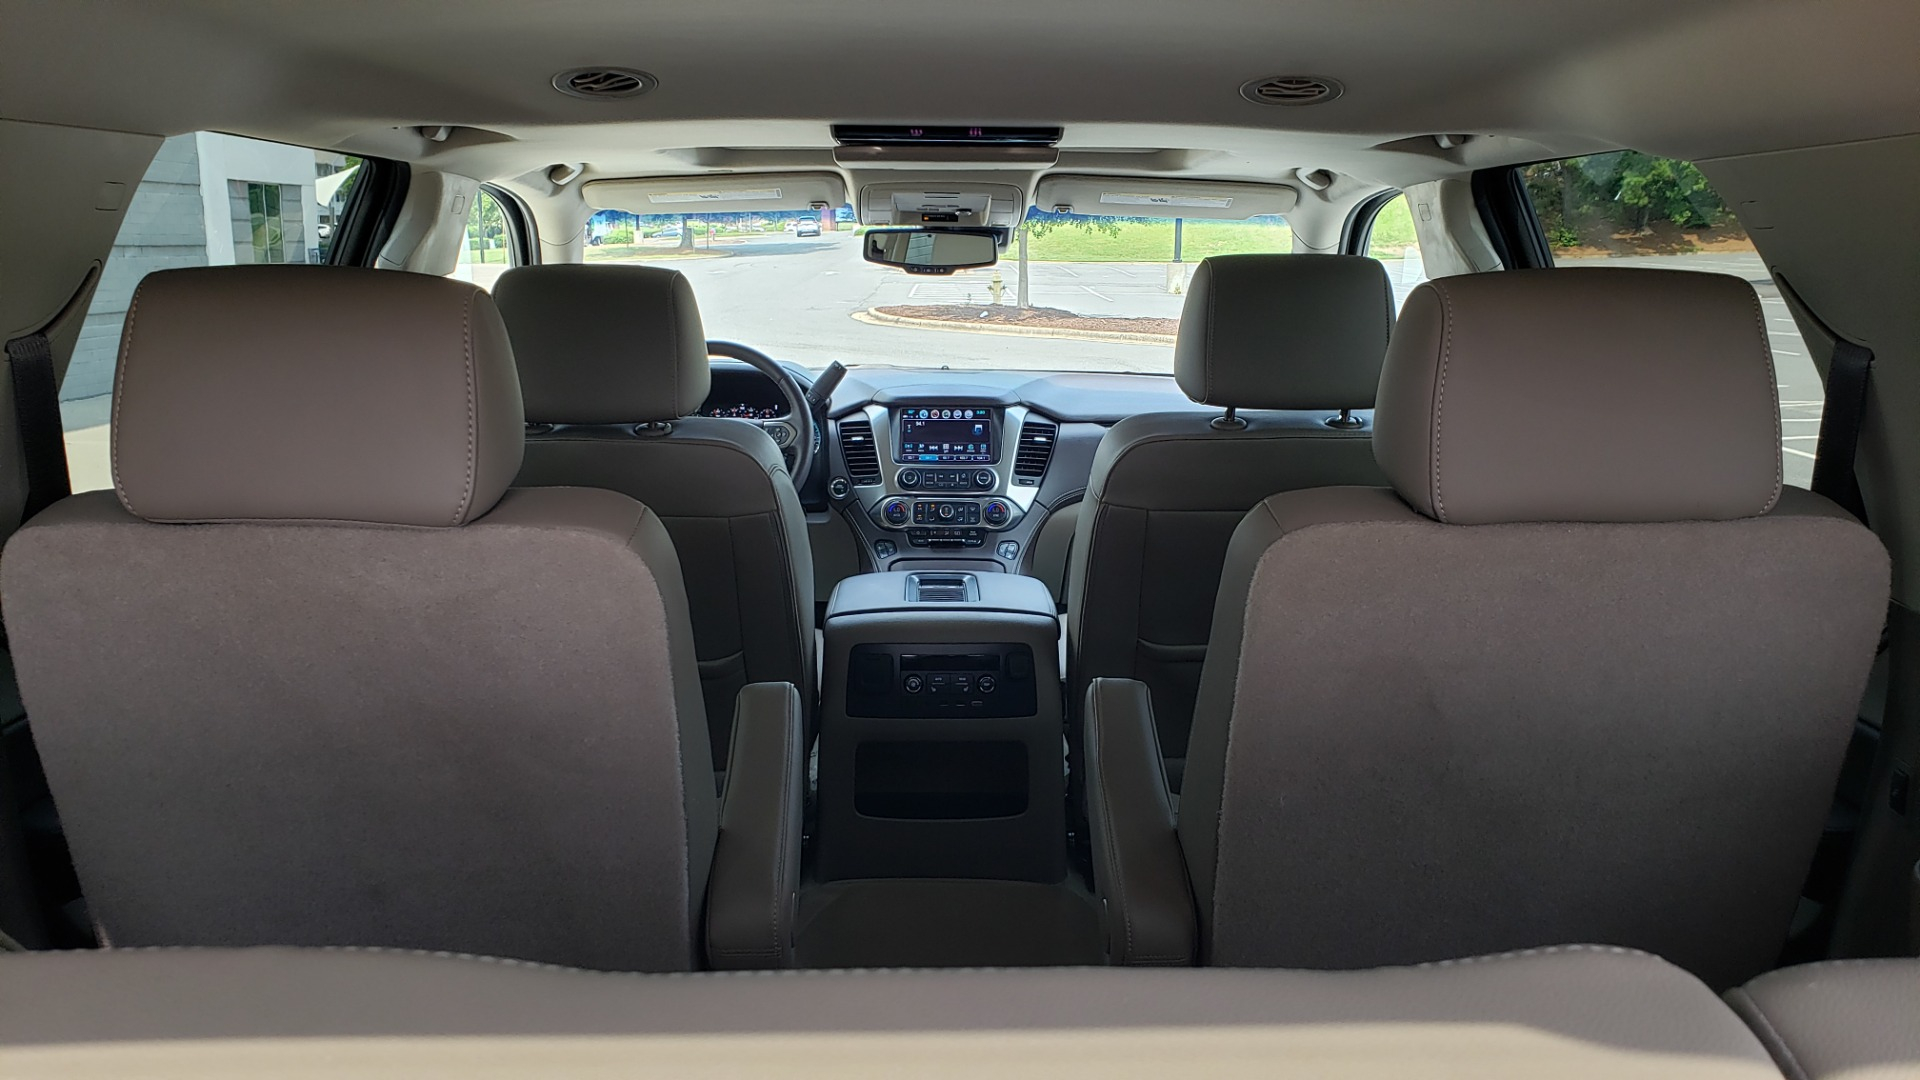 Used 2018 Chevrolet TAHOE PREMIER 4WD / NAV / SUNROOF / BOSE / 3-ROW / HUD / REARVIEW for sale $63,995 at Formula Imports in Charlotte NC 28227 18